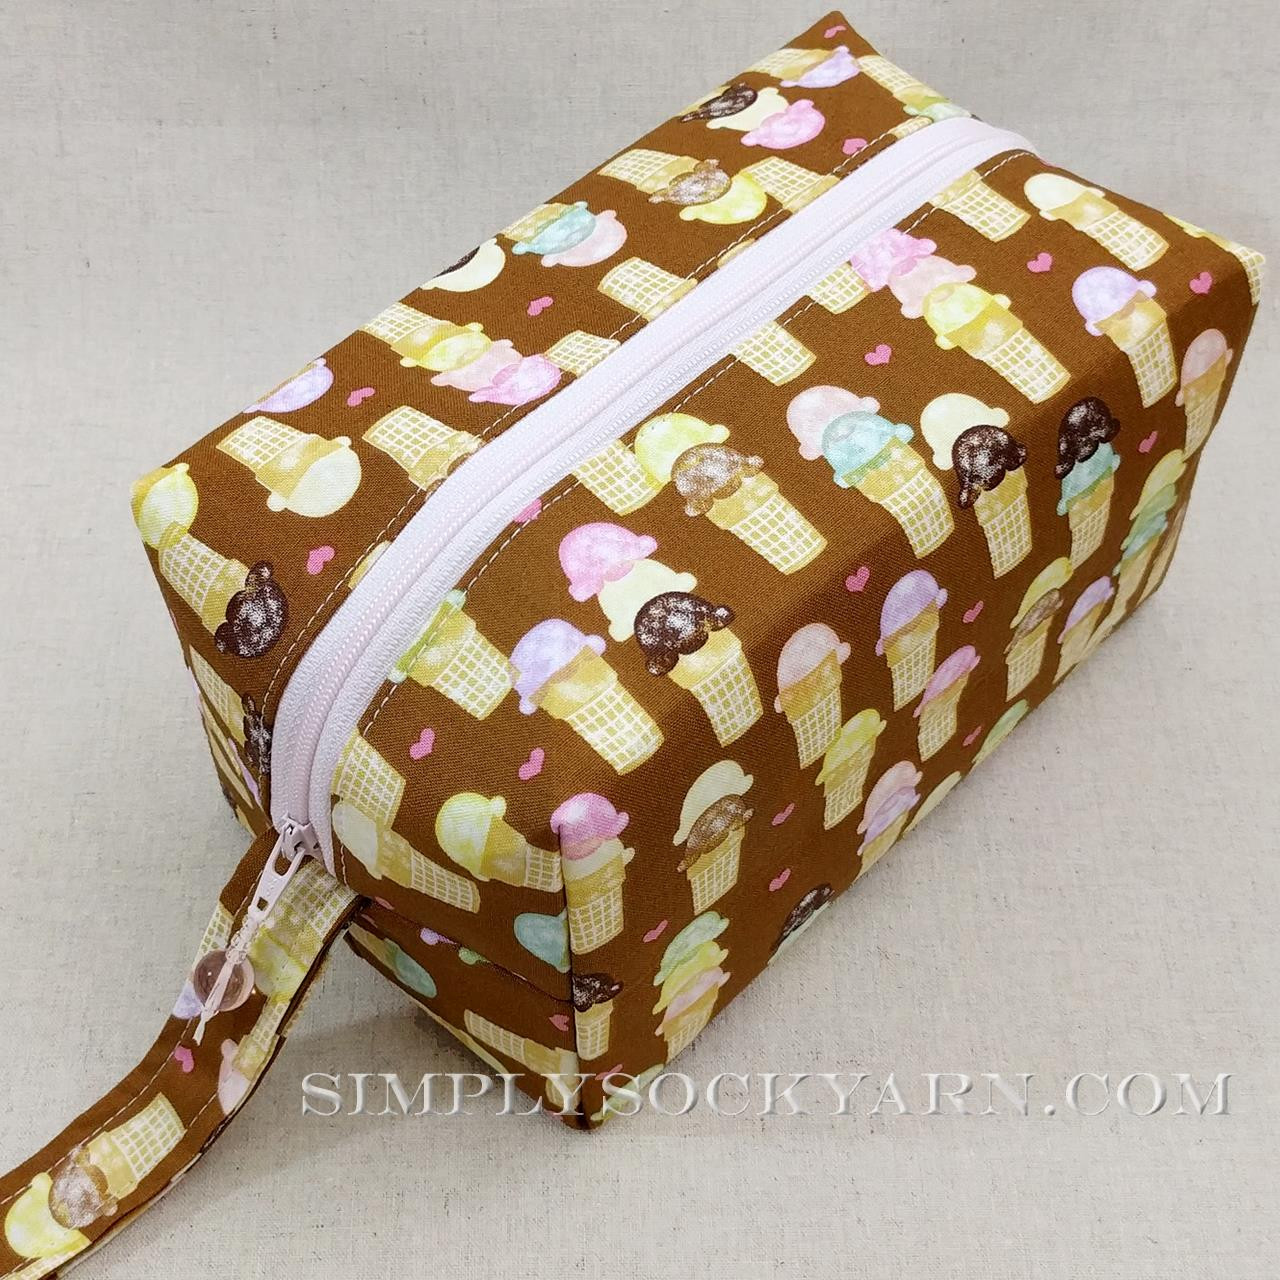 BL Bags SR Ice Cream in Brown